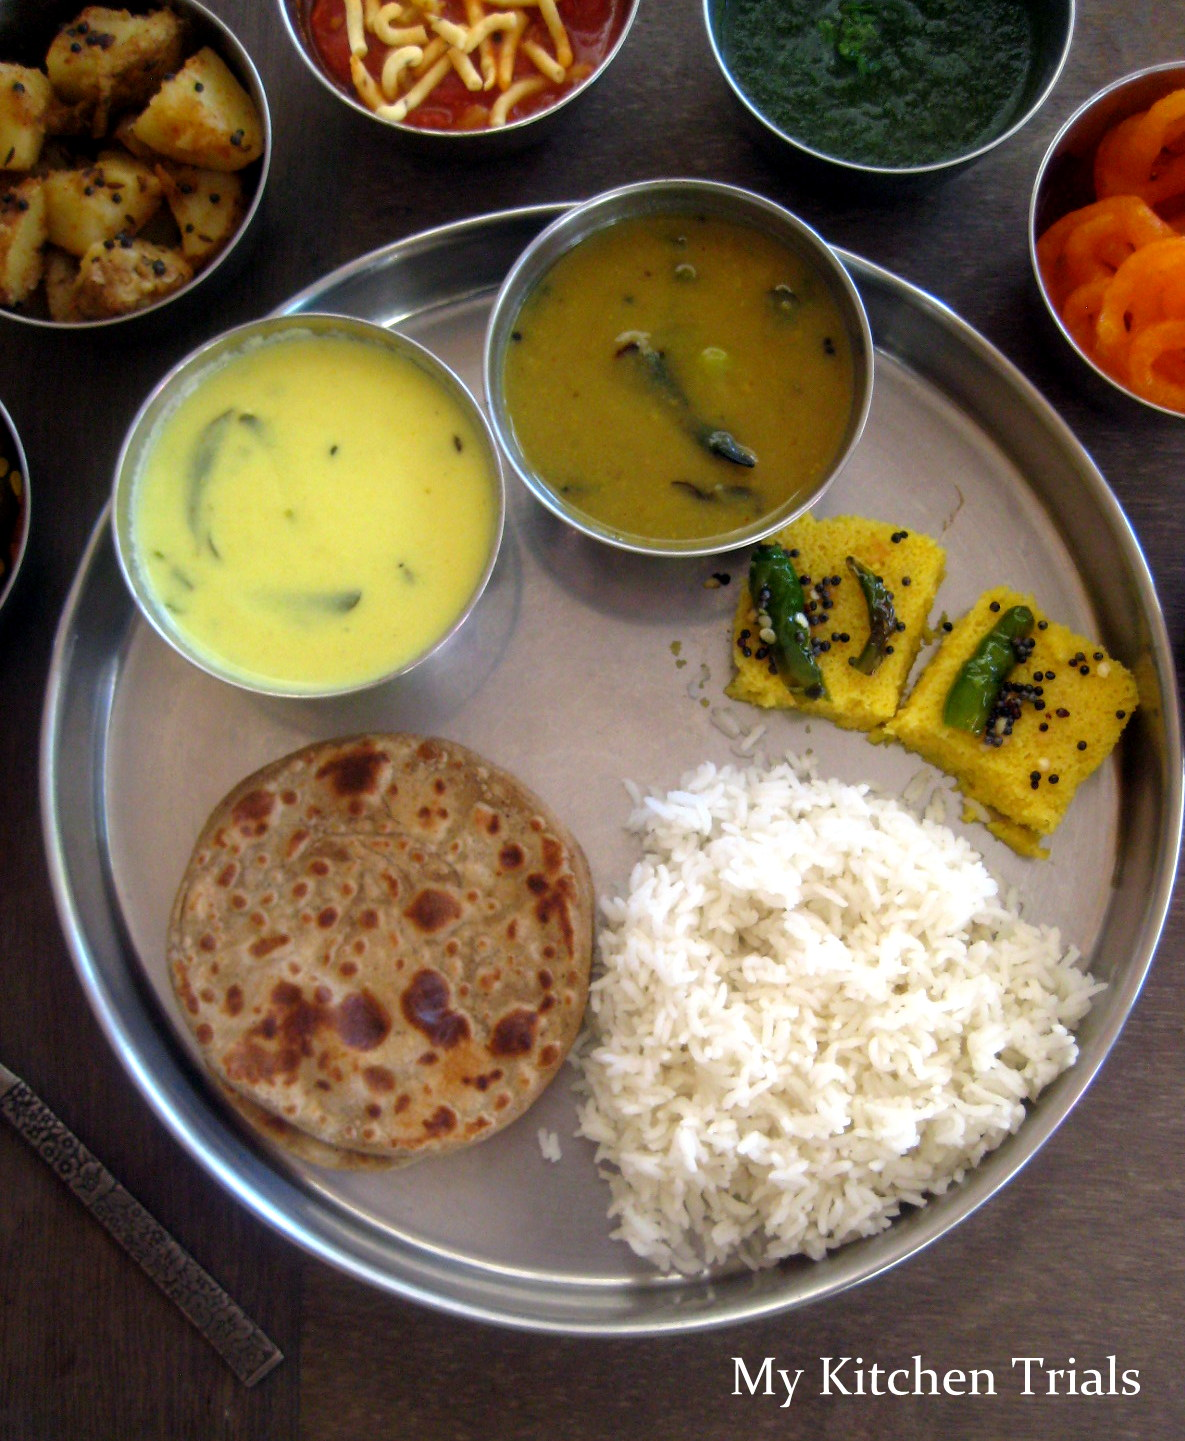 Easy gujarati breakfast recipes best cook recipes online easy gujarati breakfast recipes forumfinder Images